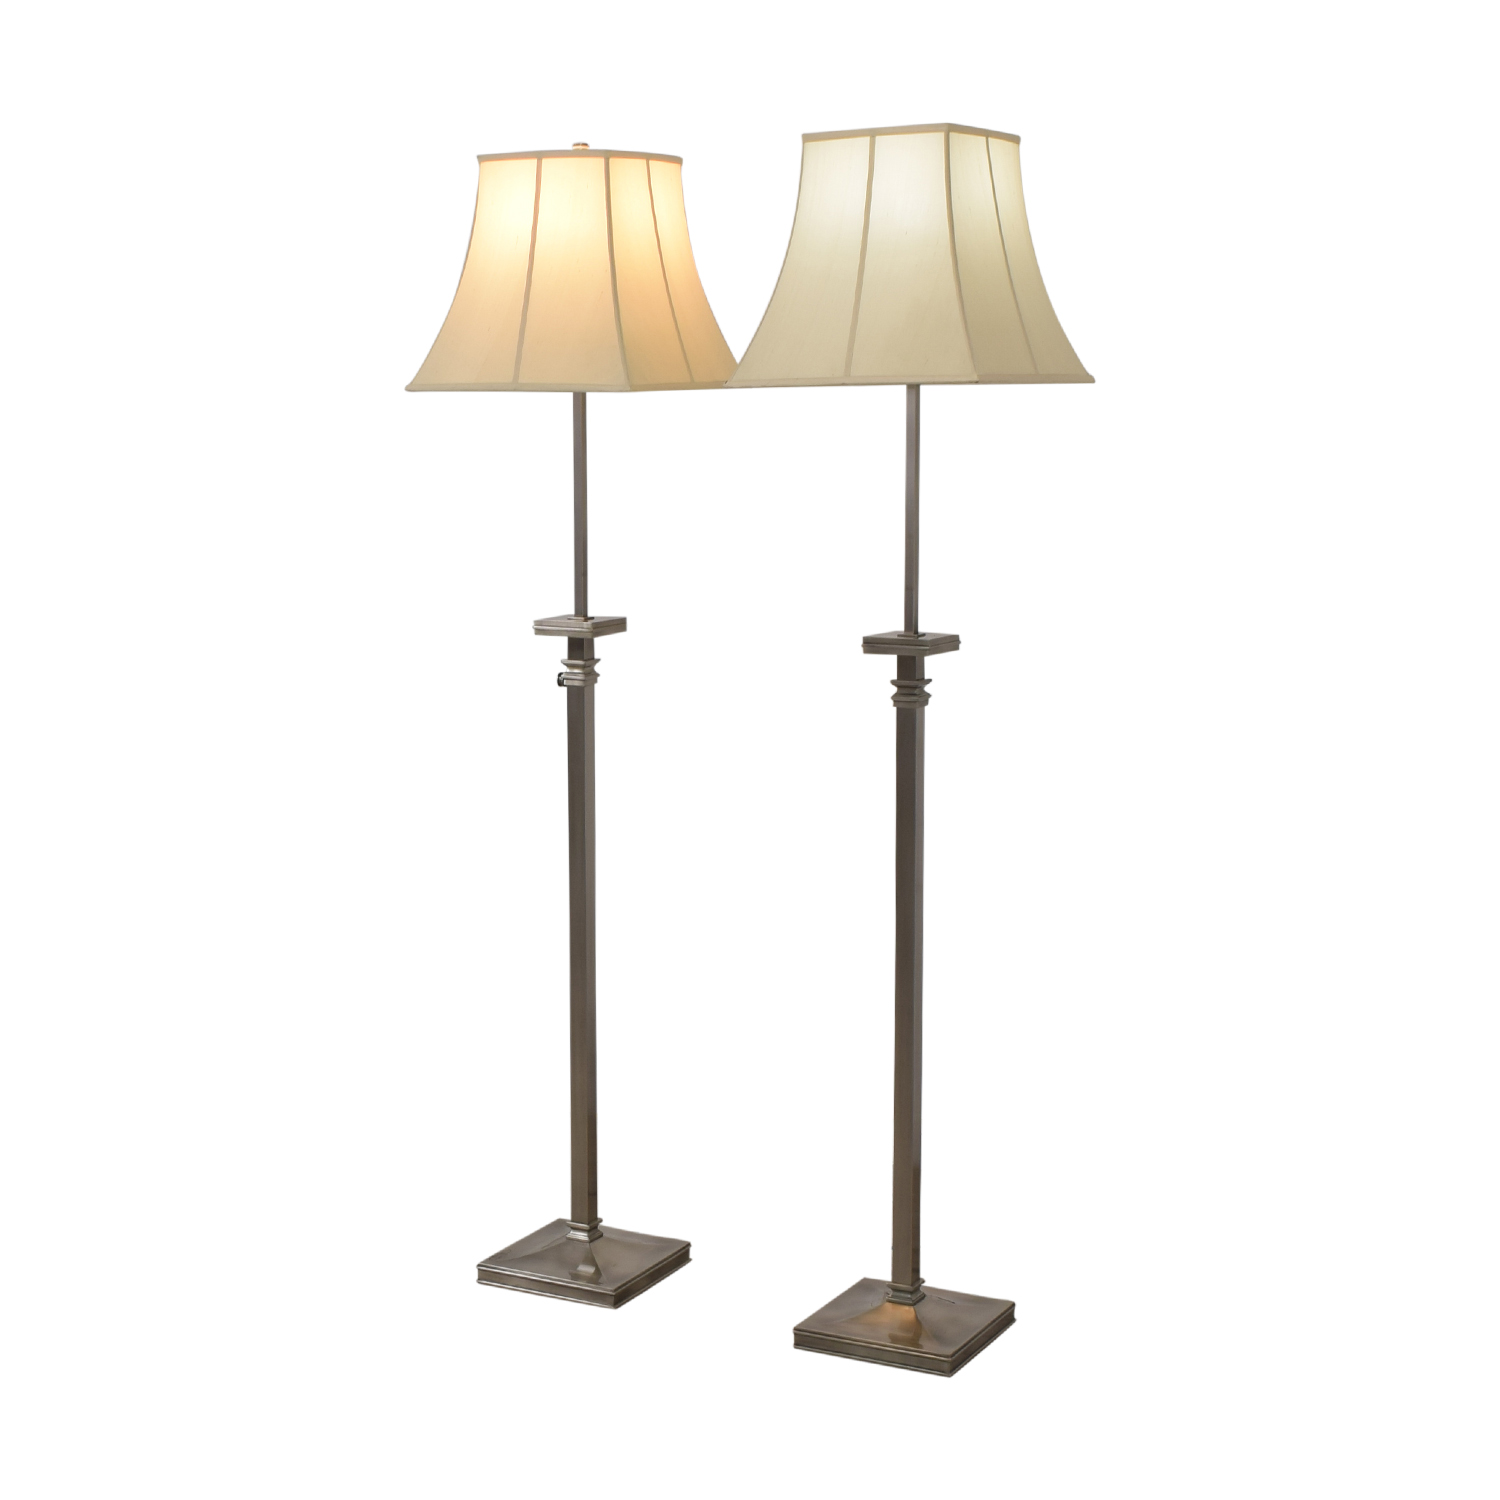 Pottery Barn Chrome Adjustable Floor Lamps / Lamps